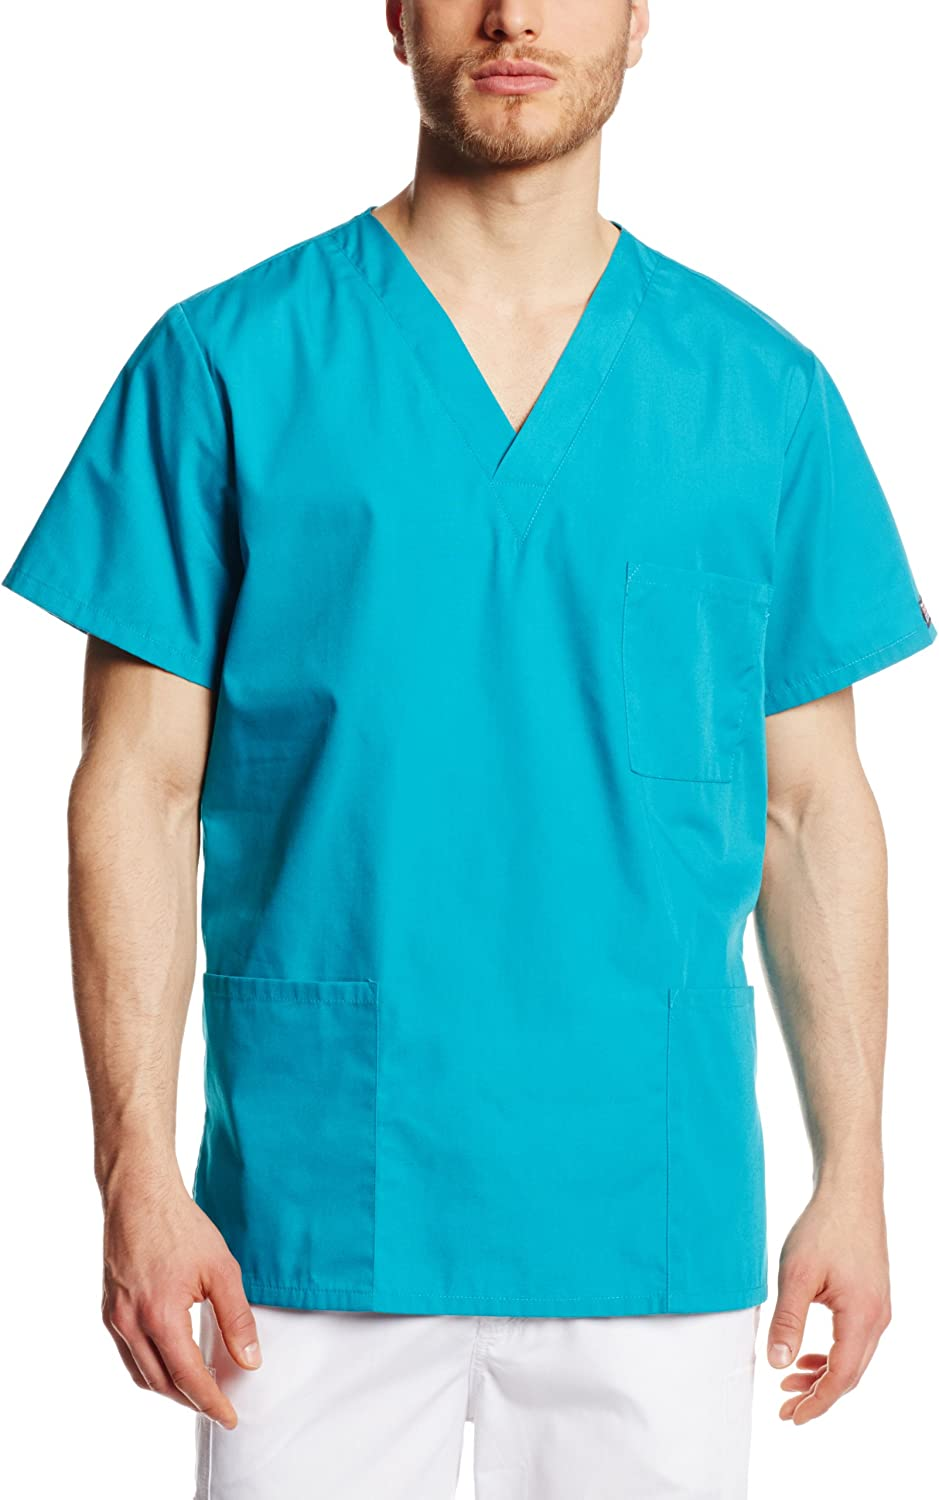 CHEROKEE womens Originals Unisex V-neck Top Medical Scrubs Shirt, Teal Blue, XX-Large US: Medical Scrubs Shirts: Clothing